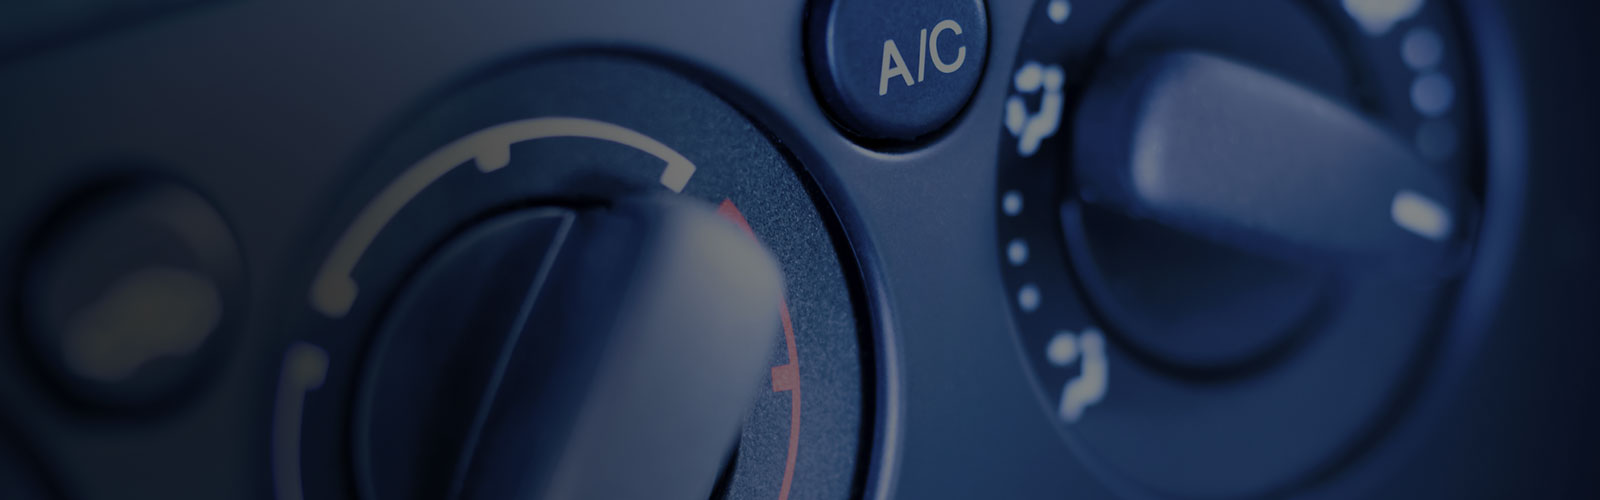 Auto A/C & Heating Services